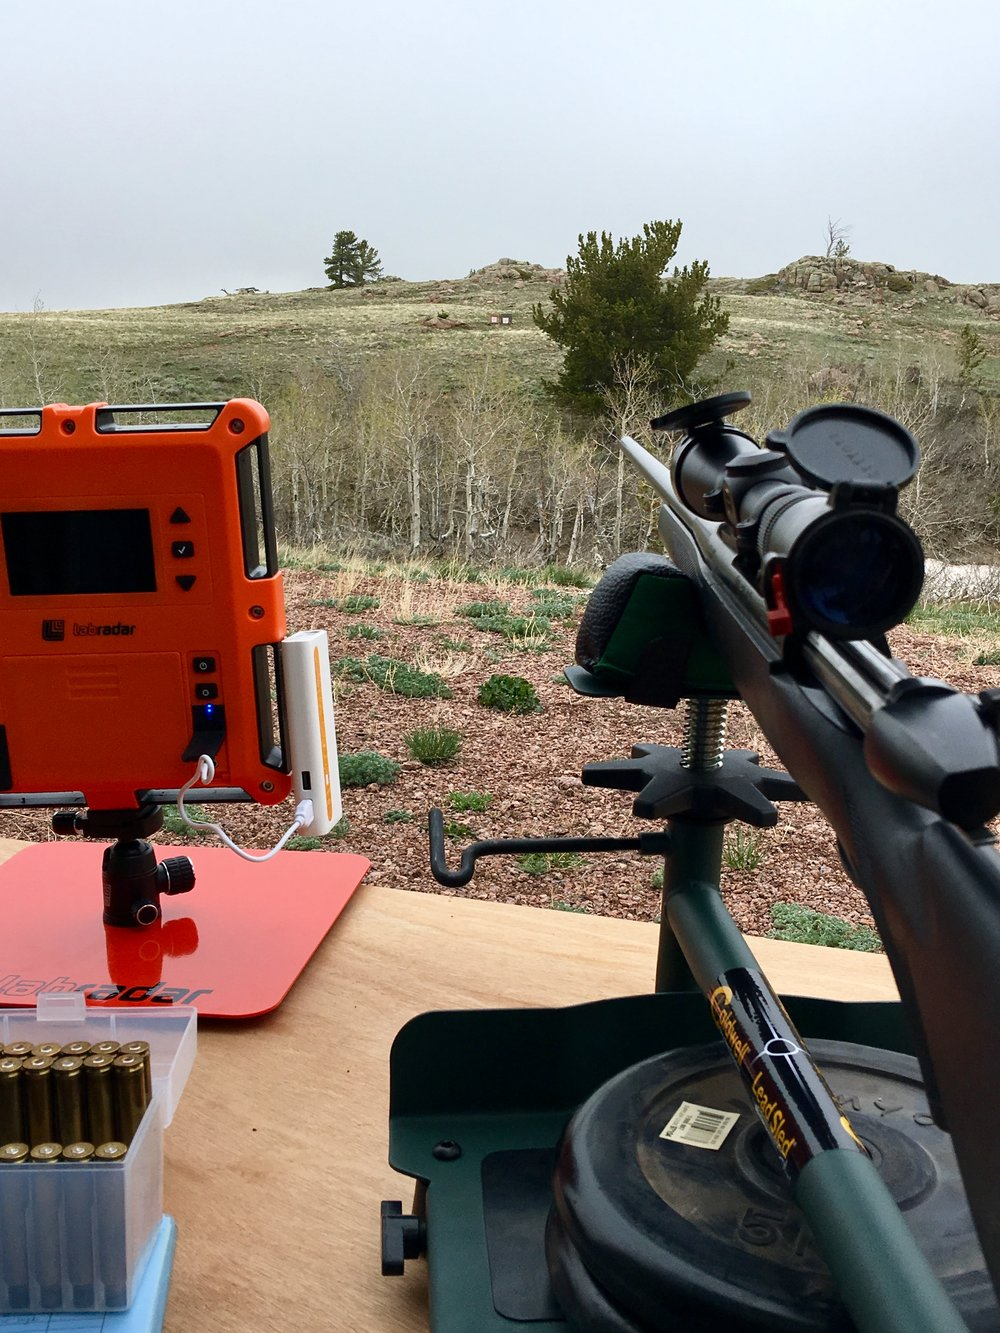 Labradar Chronograph and Lead Sled+ make shooting much mor fun and setup much less time consuming.